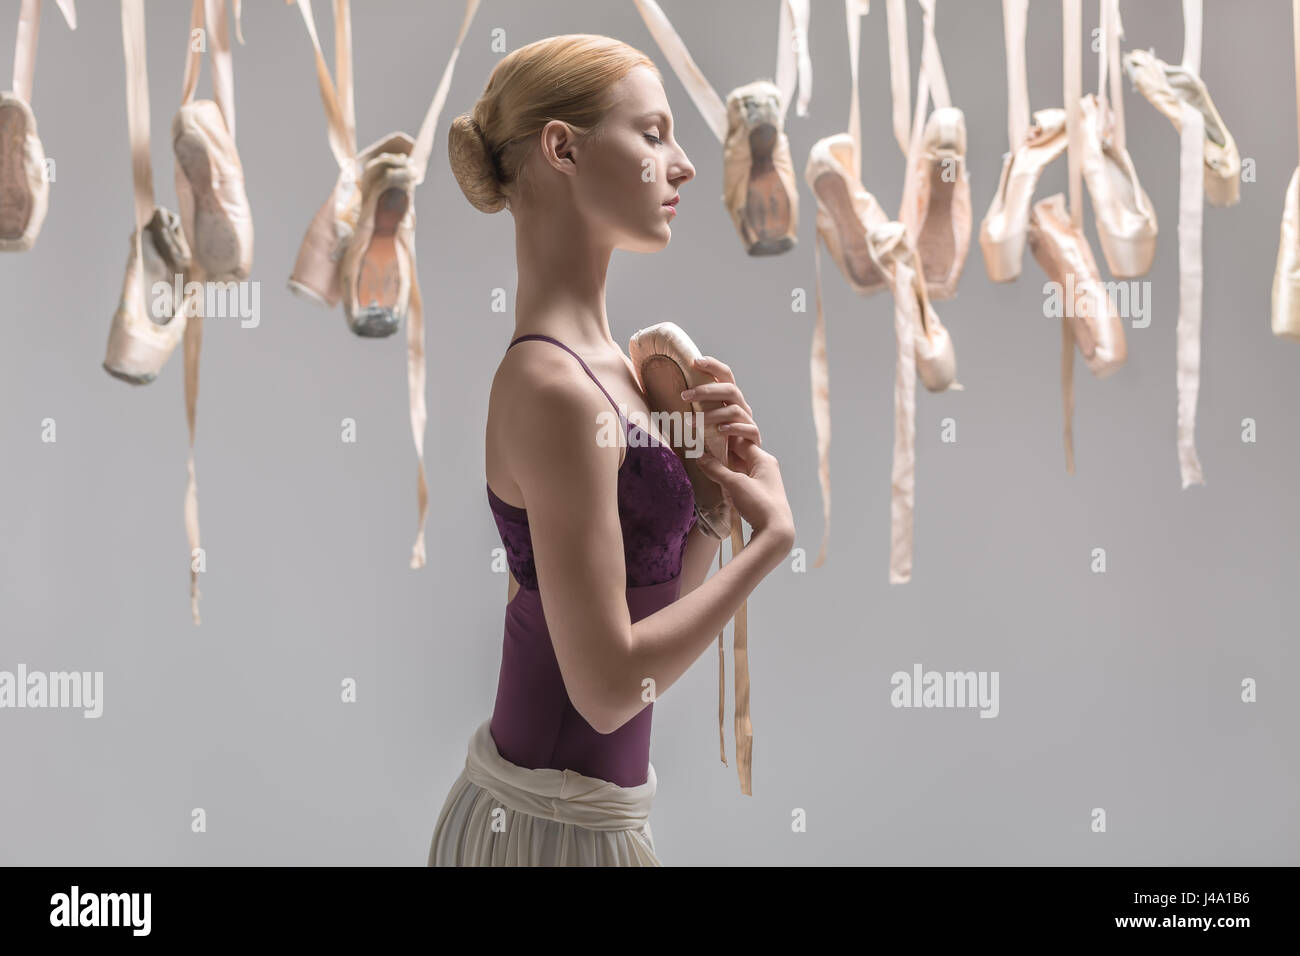 Blonde ballerina and pointe shoes - Stock Image